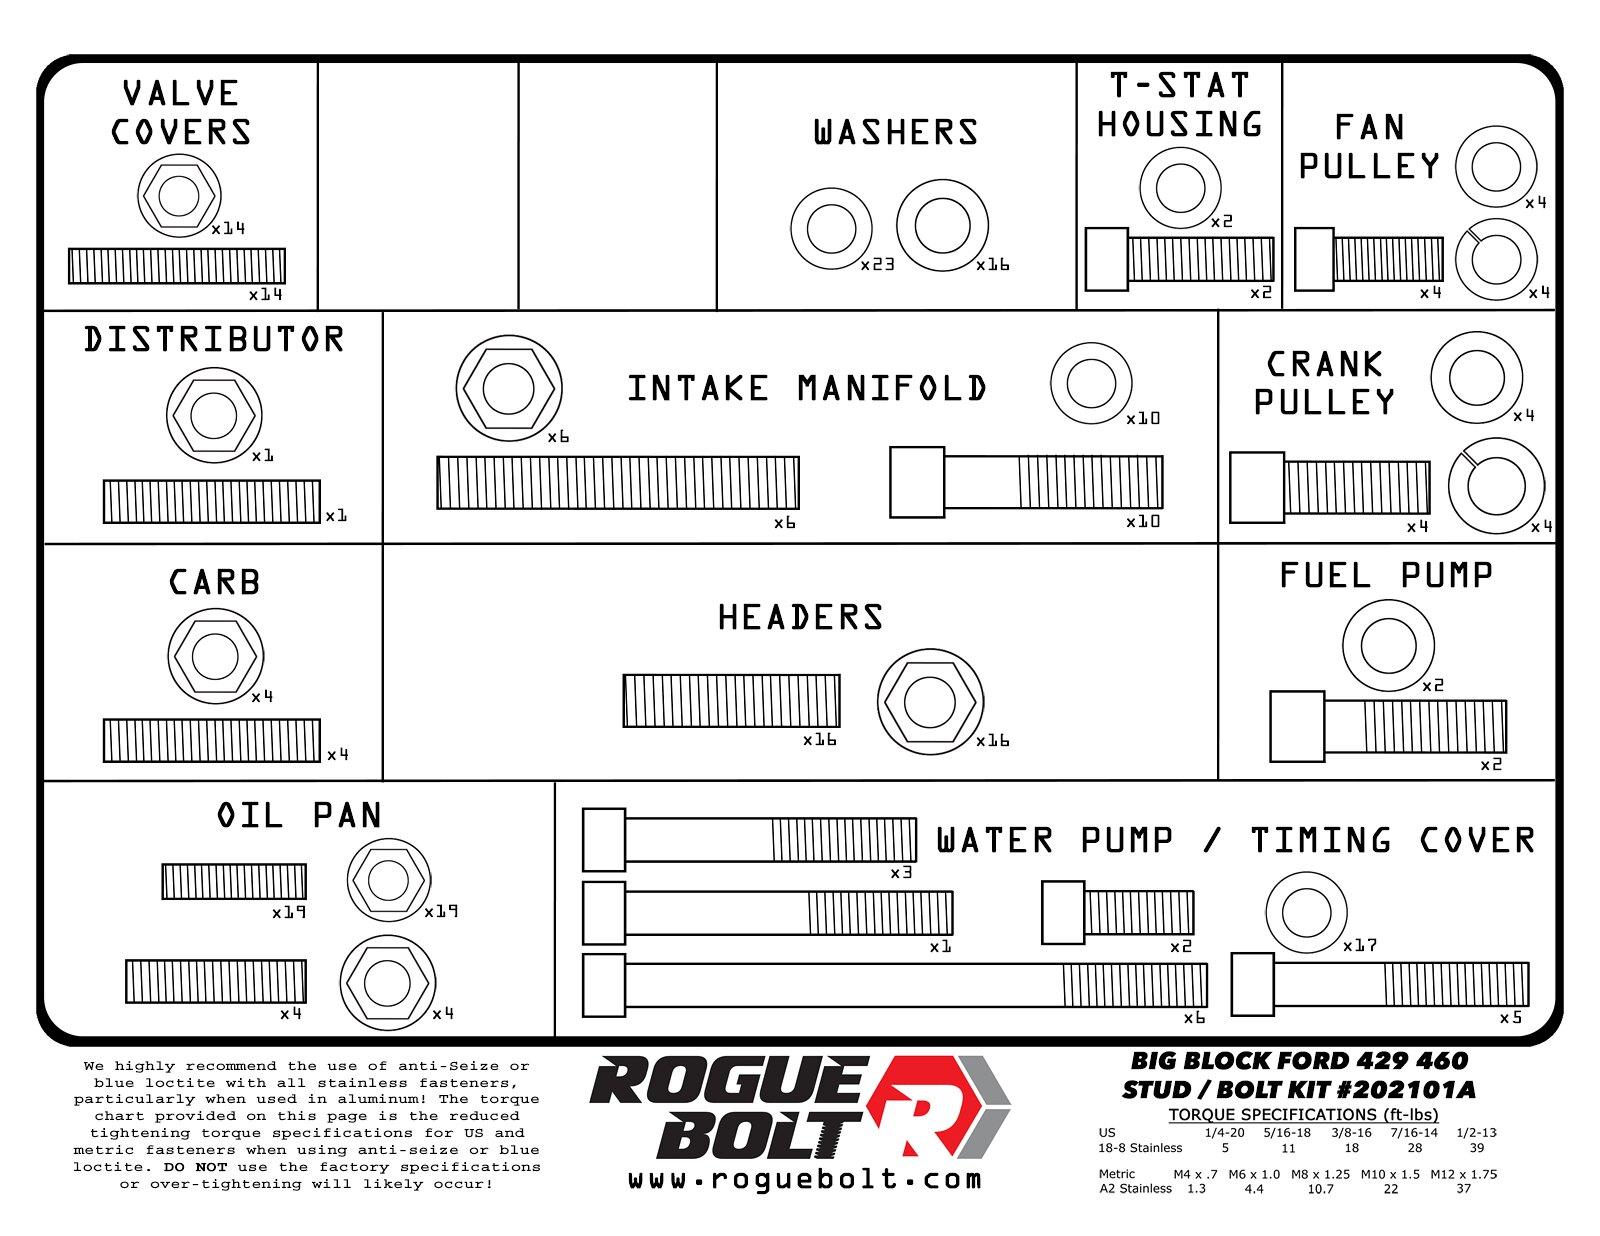 Big Block Ford 429 460 Stainless Engine Stud Bolt Kit Bbf Car Timing A Click Pictures To View High Resolution Images